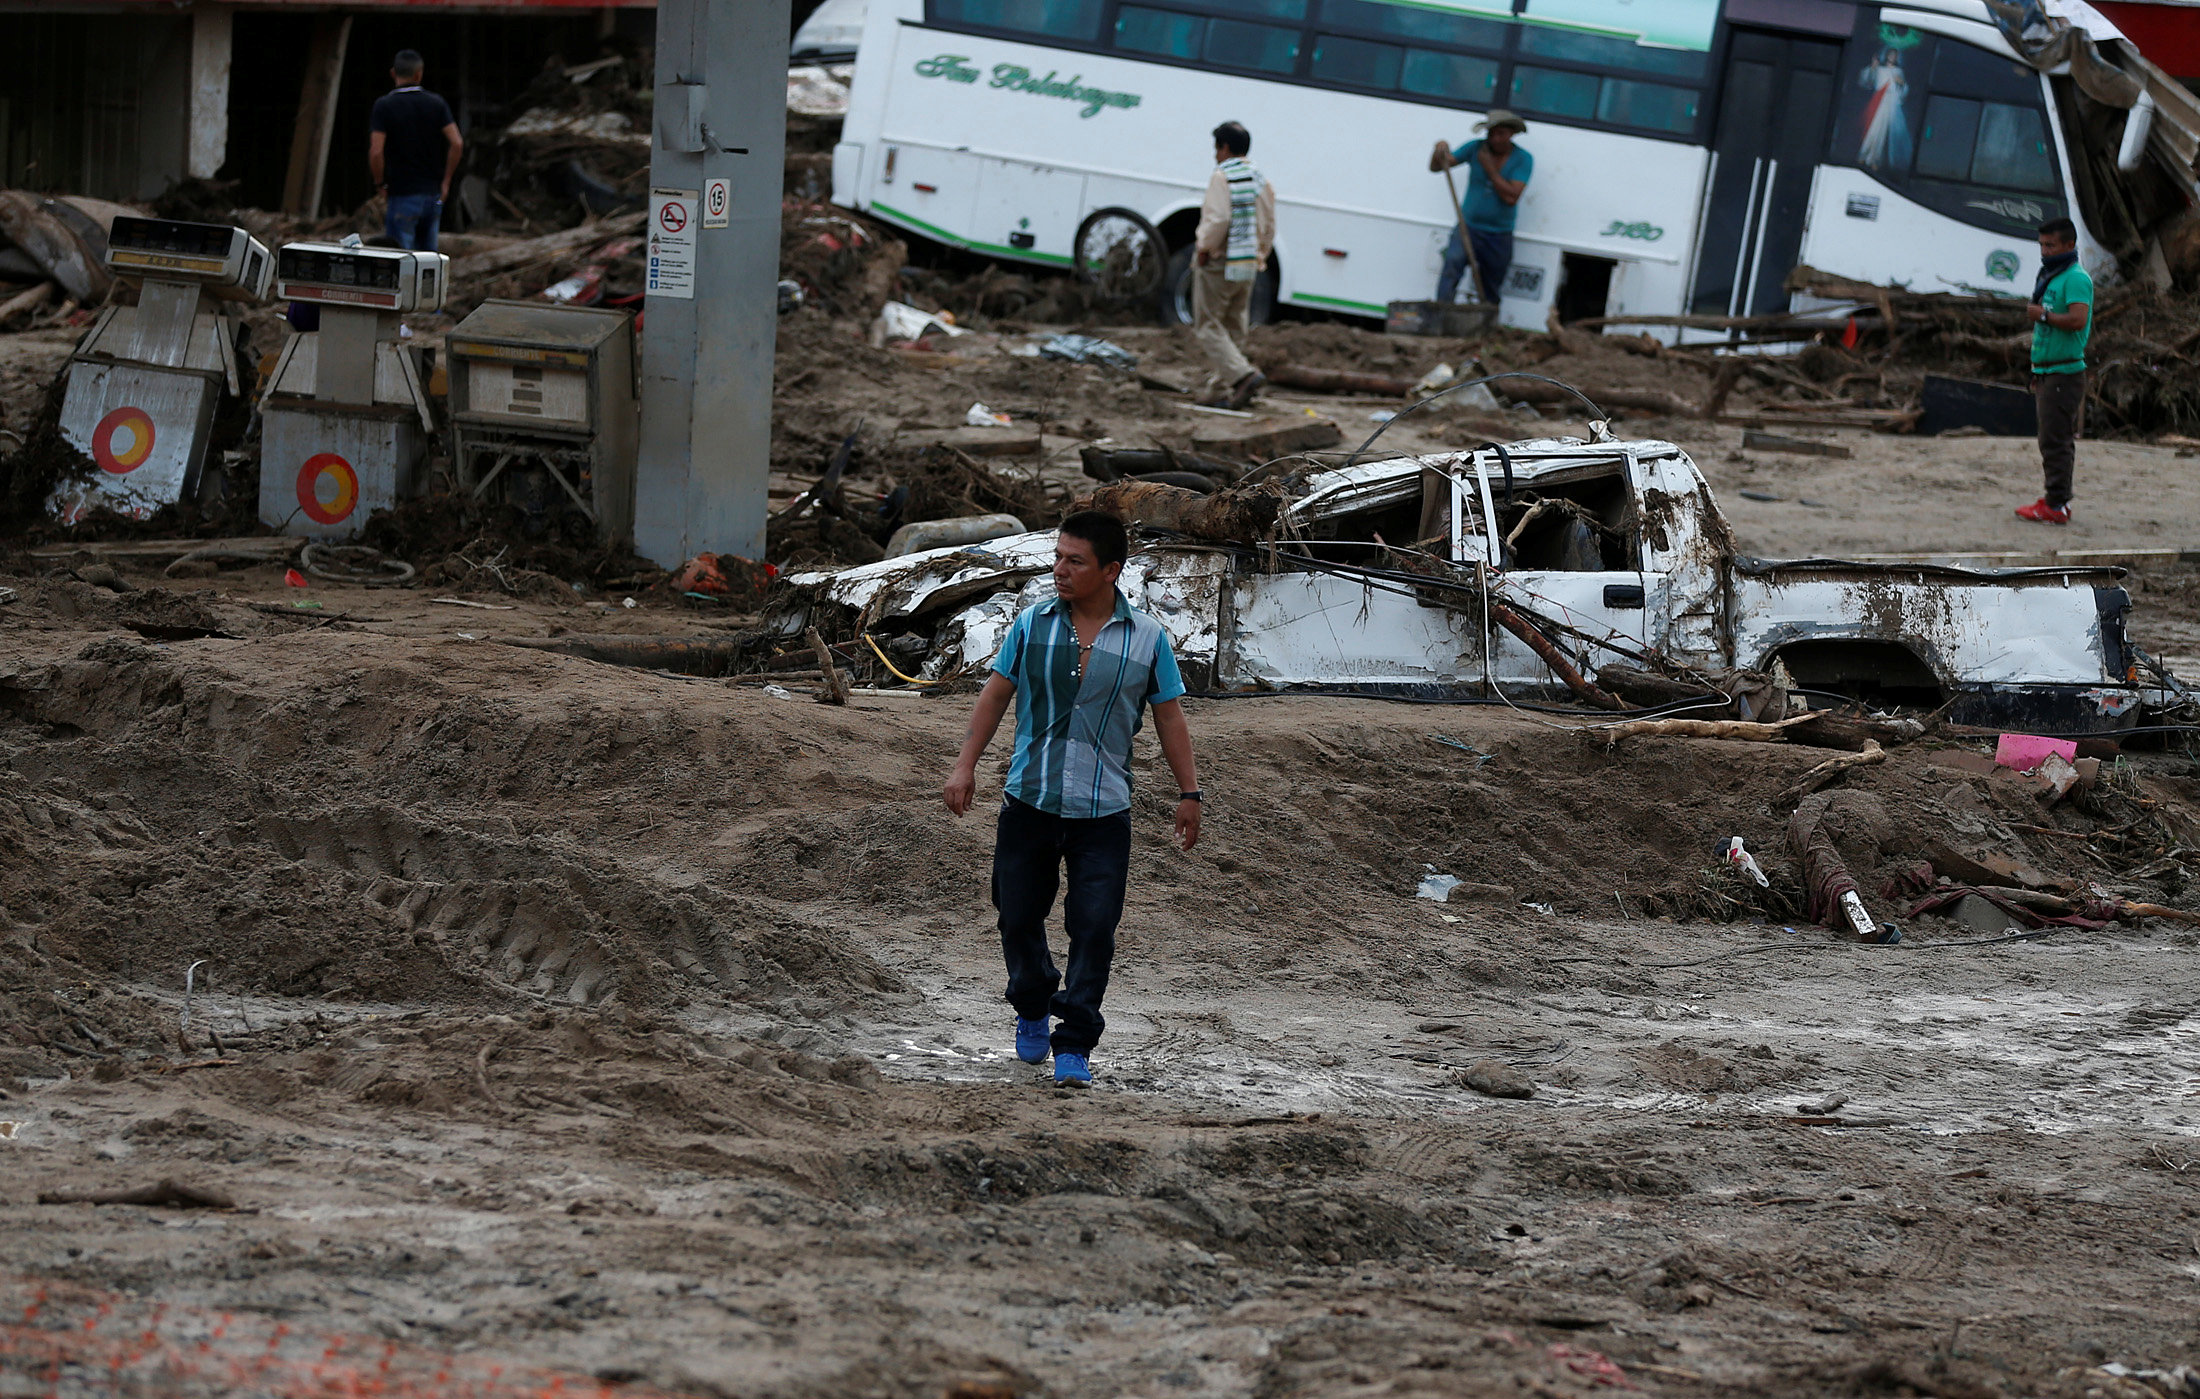 A man walks among the ruins after flooding and mudslides, caused by heavy rains leading several rivers to overflow, pushing sediment and rocks into buildings and roads, in Mocoa, Colombia